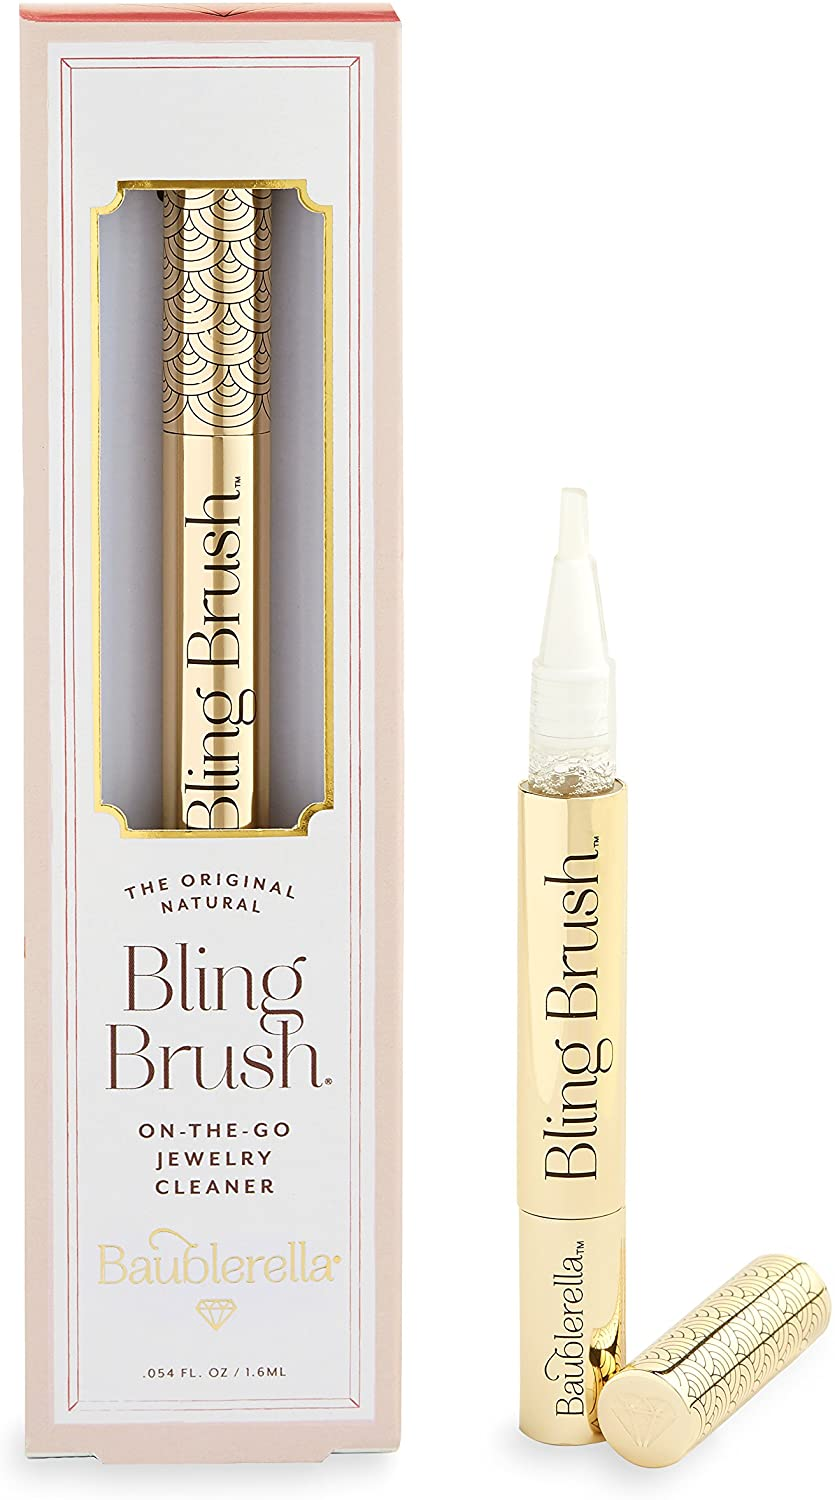 Bling Brush